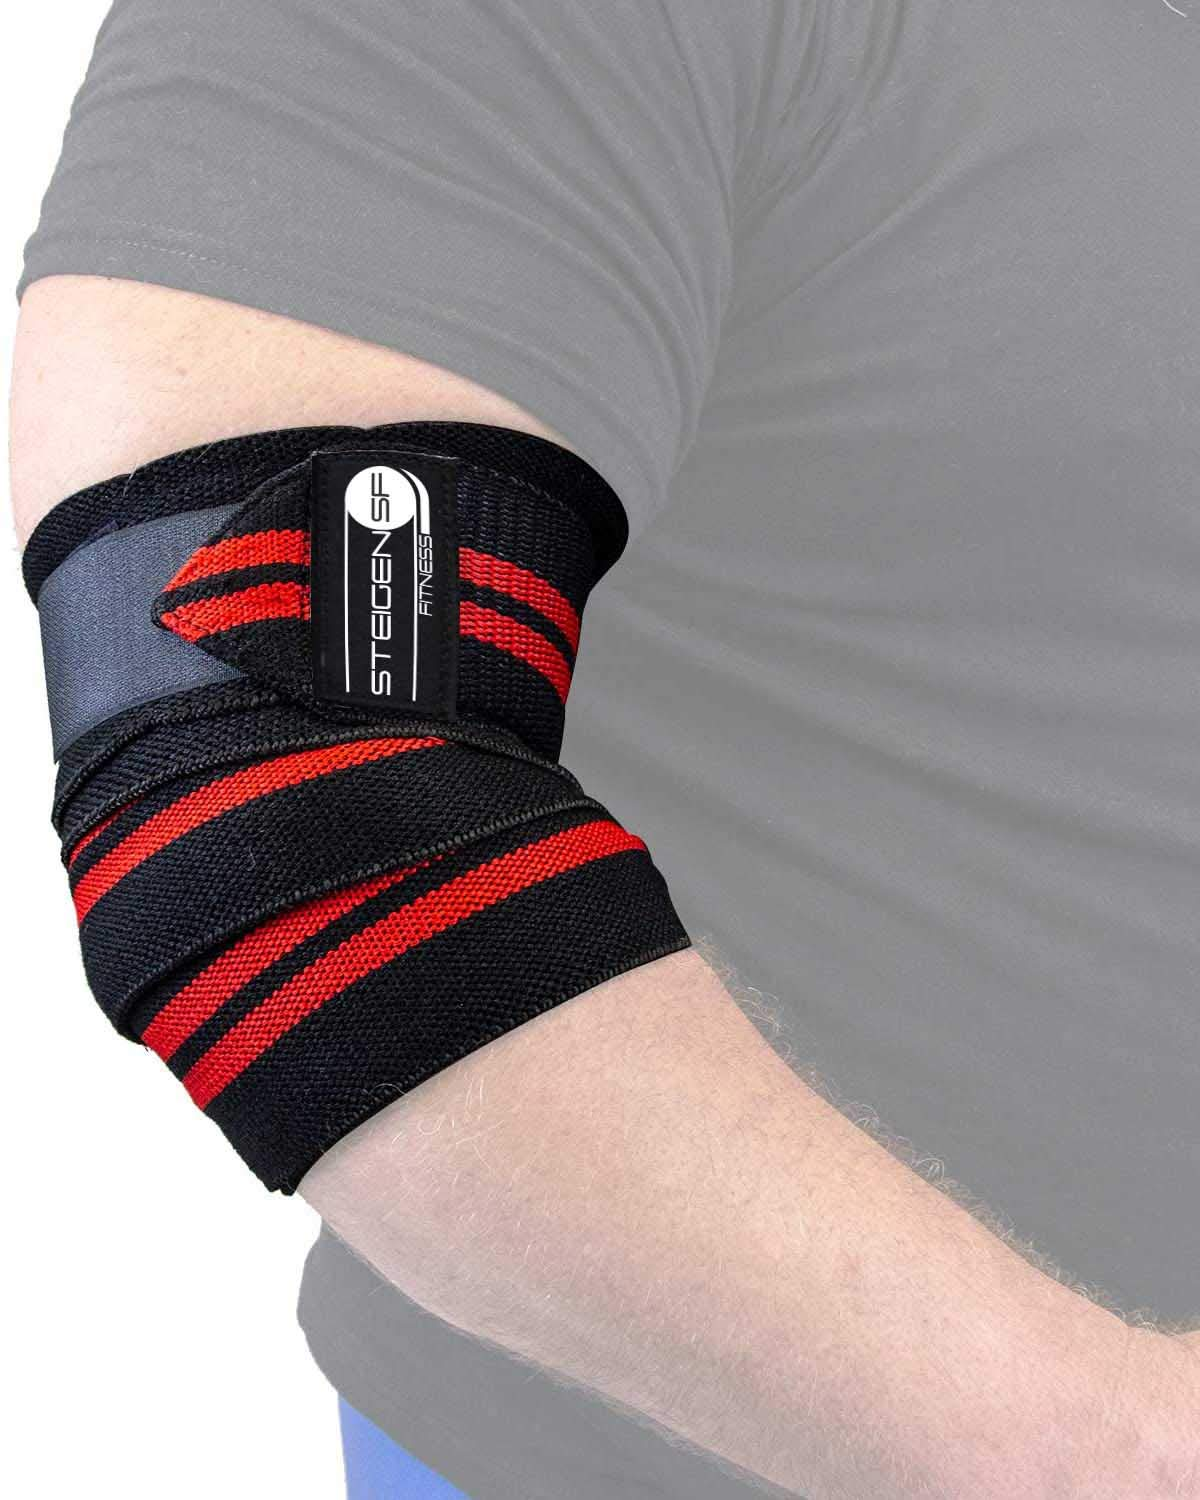 Protector Austodex elbow Sleeve Power lifting Weight lifting elbow pair